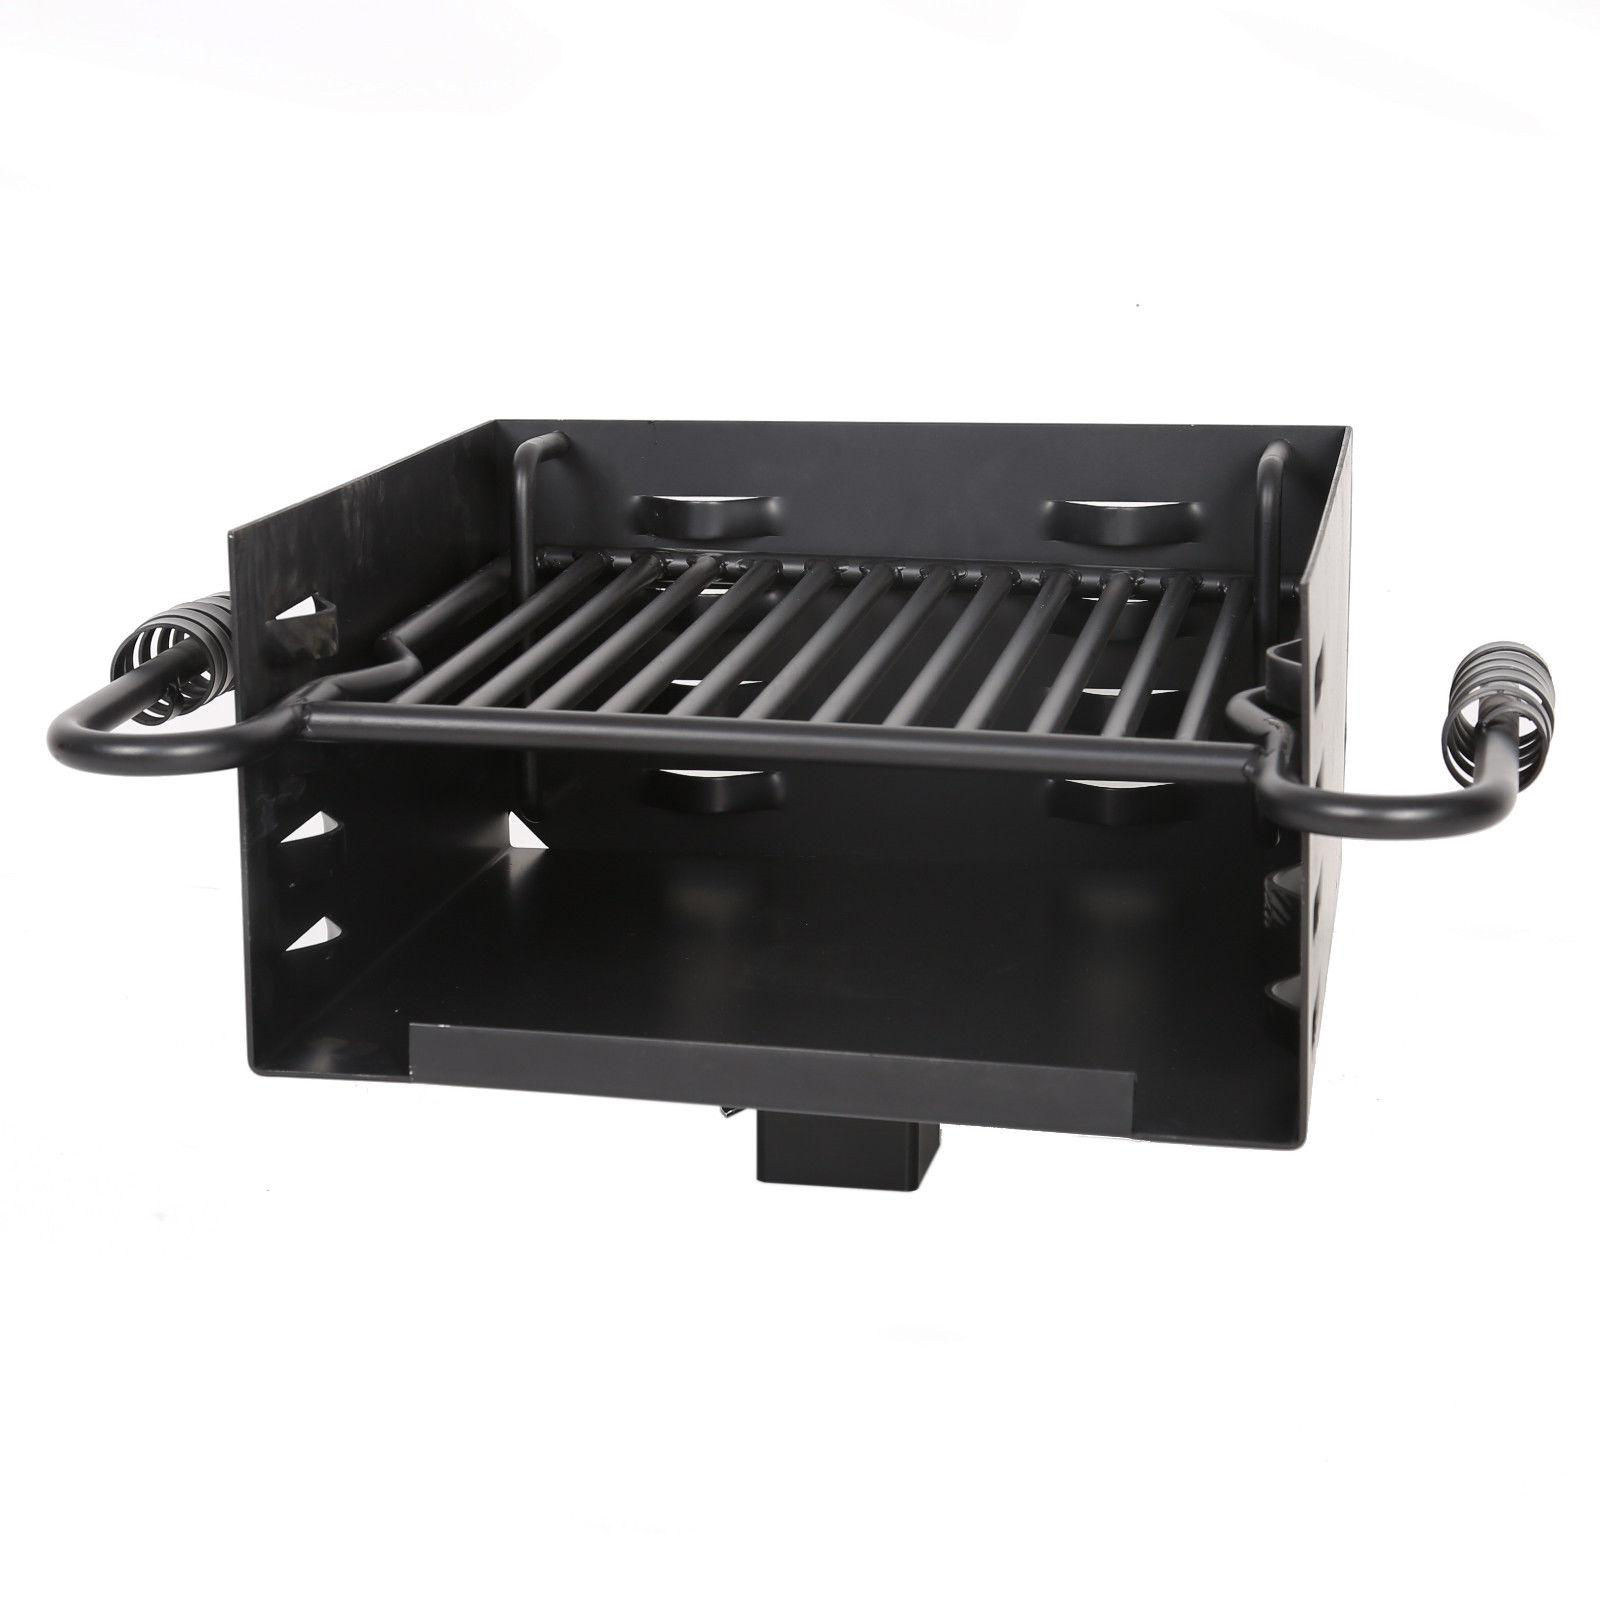 outdoor style grill charcoal barbecue patio meat